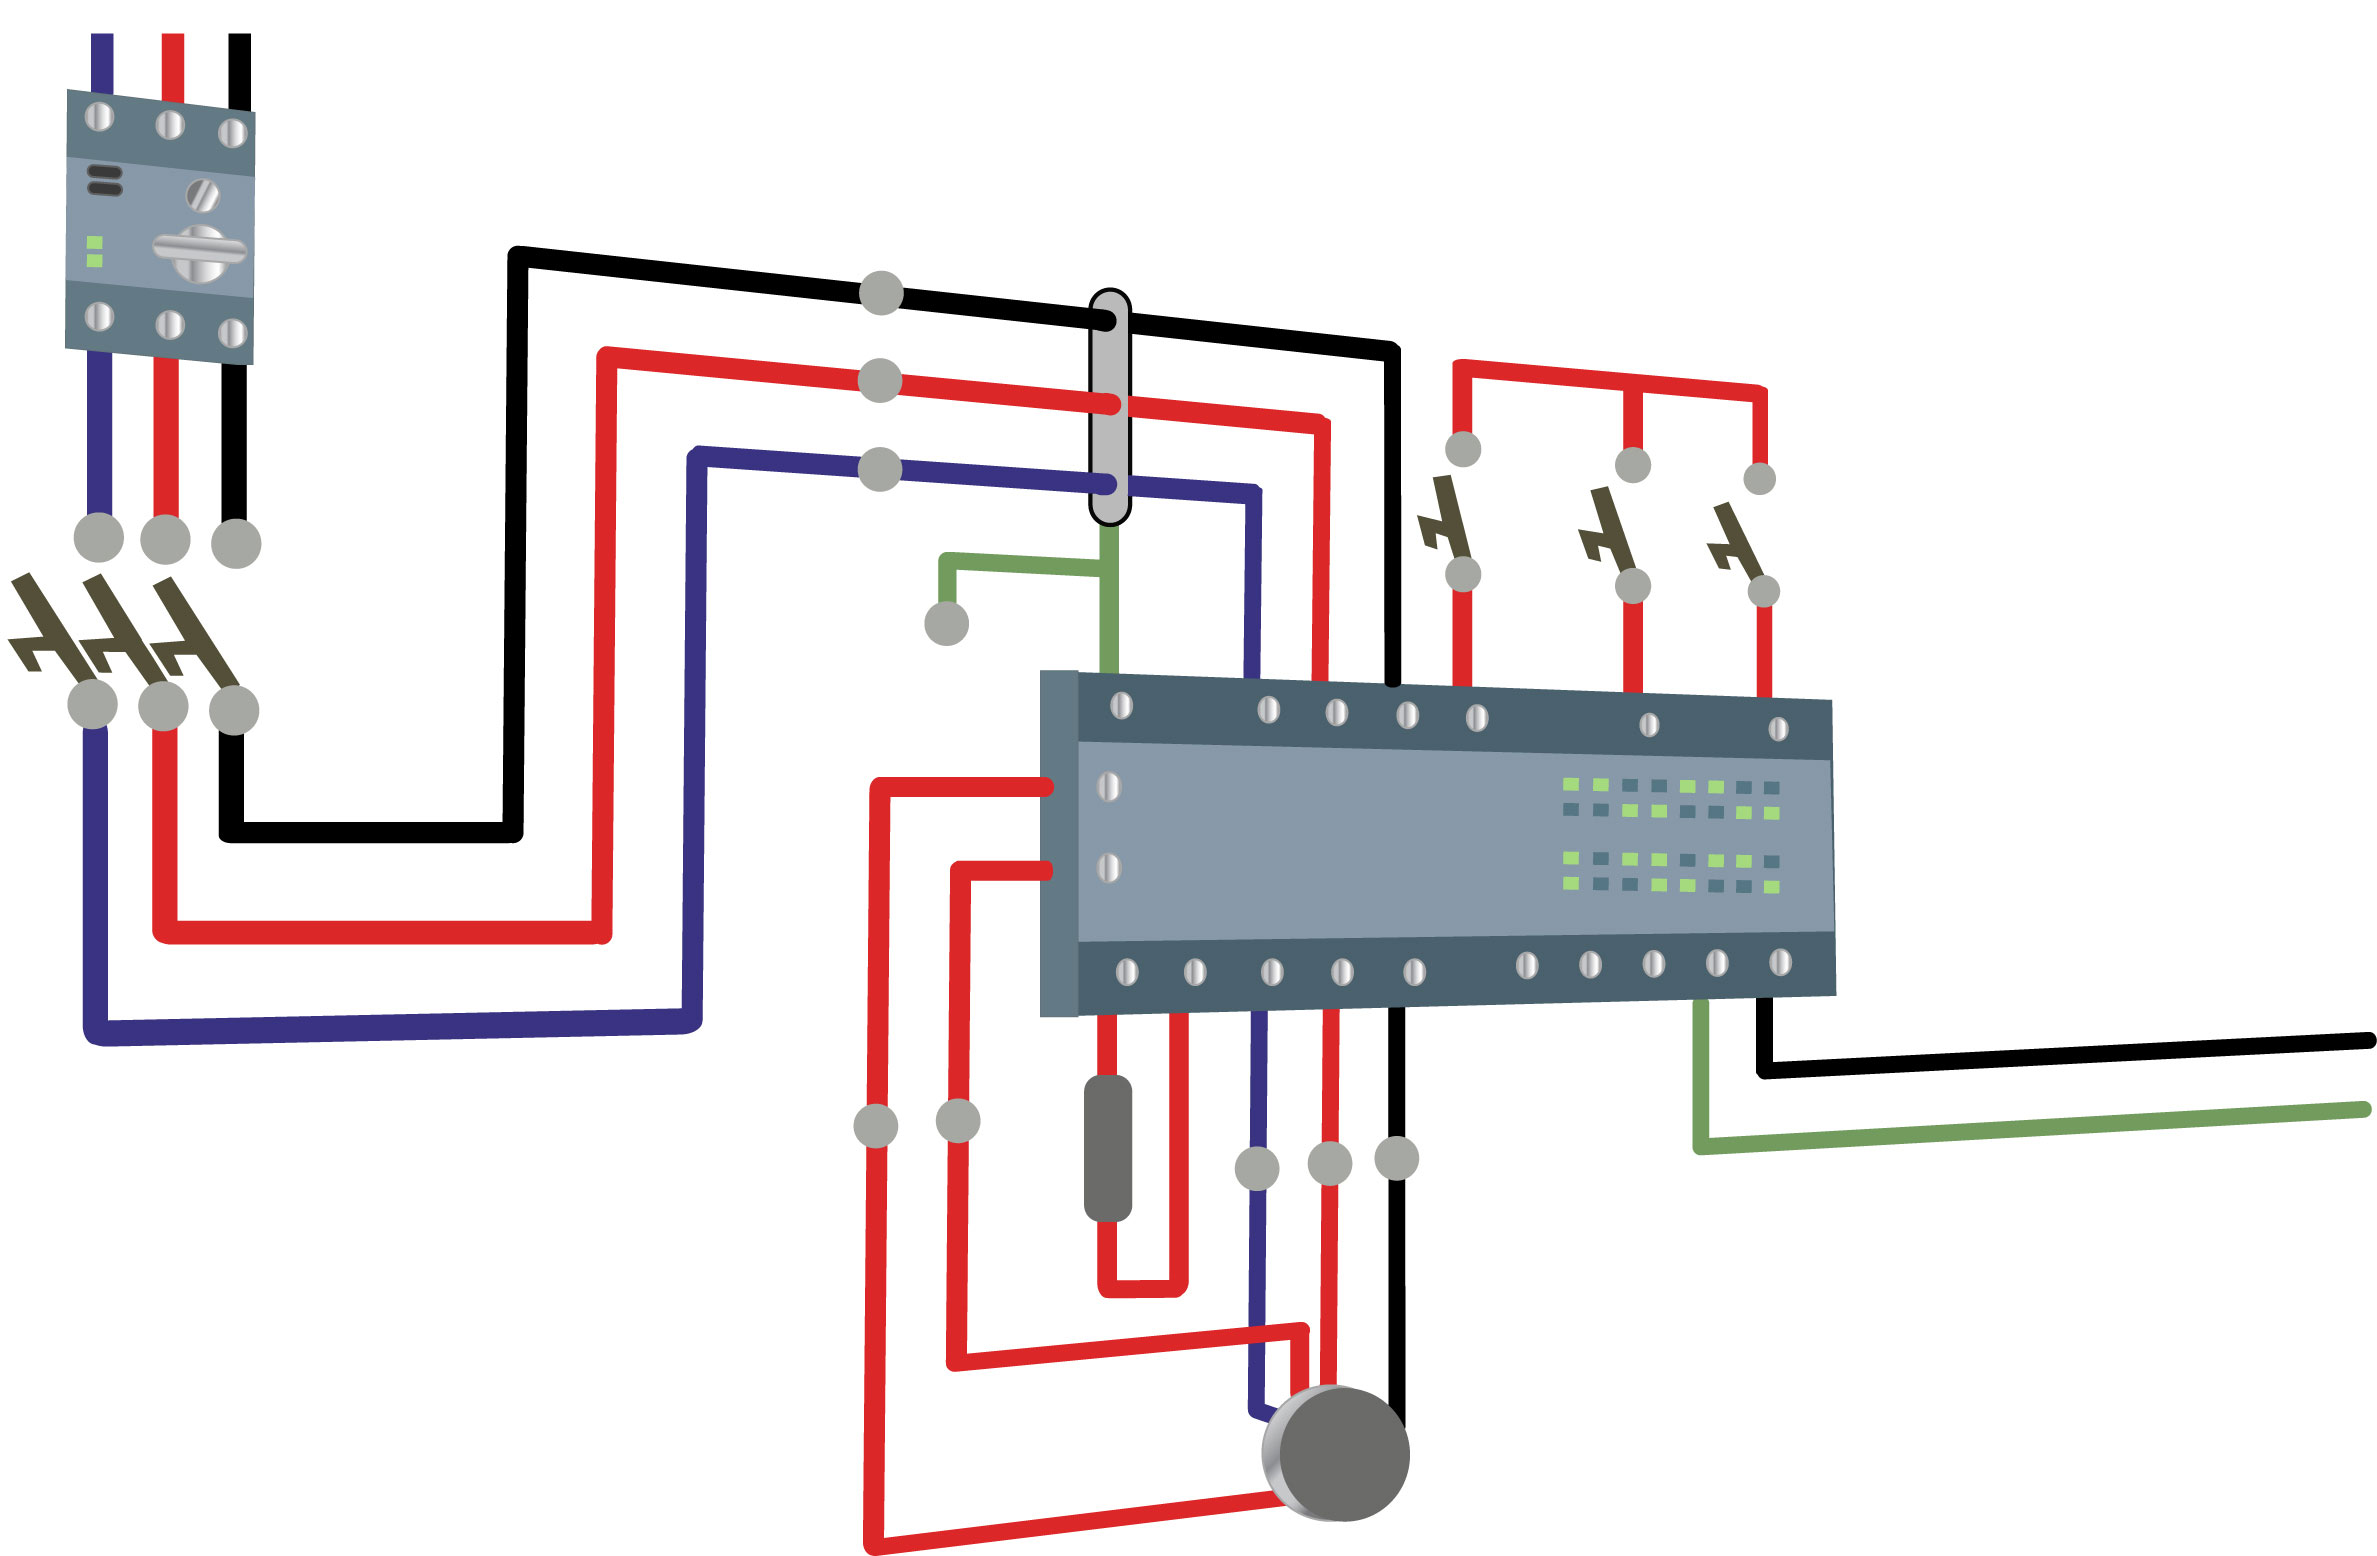 Single Line Diagram Of The Ac Transmission And Distribution System further Press Switch Ptm Switch And Ptb Switch together with P4n378 furthermore BG9naWMtZ2F0ZS1zY2hlbWF0aWMtc3ltYm9scw besides Plant Cell And Animal Diagram A3f7b3e450b764d3ce584a37a1a9b954   Wiring Diagram. on basic electrical wiring diagram symbols